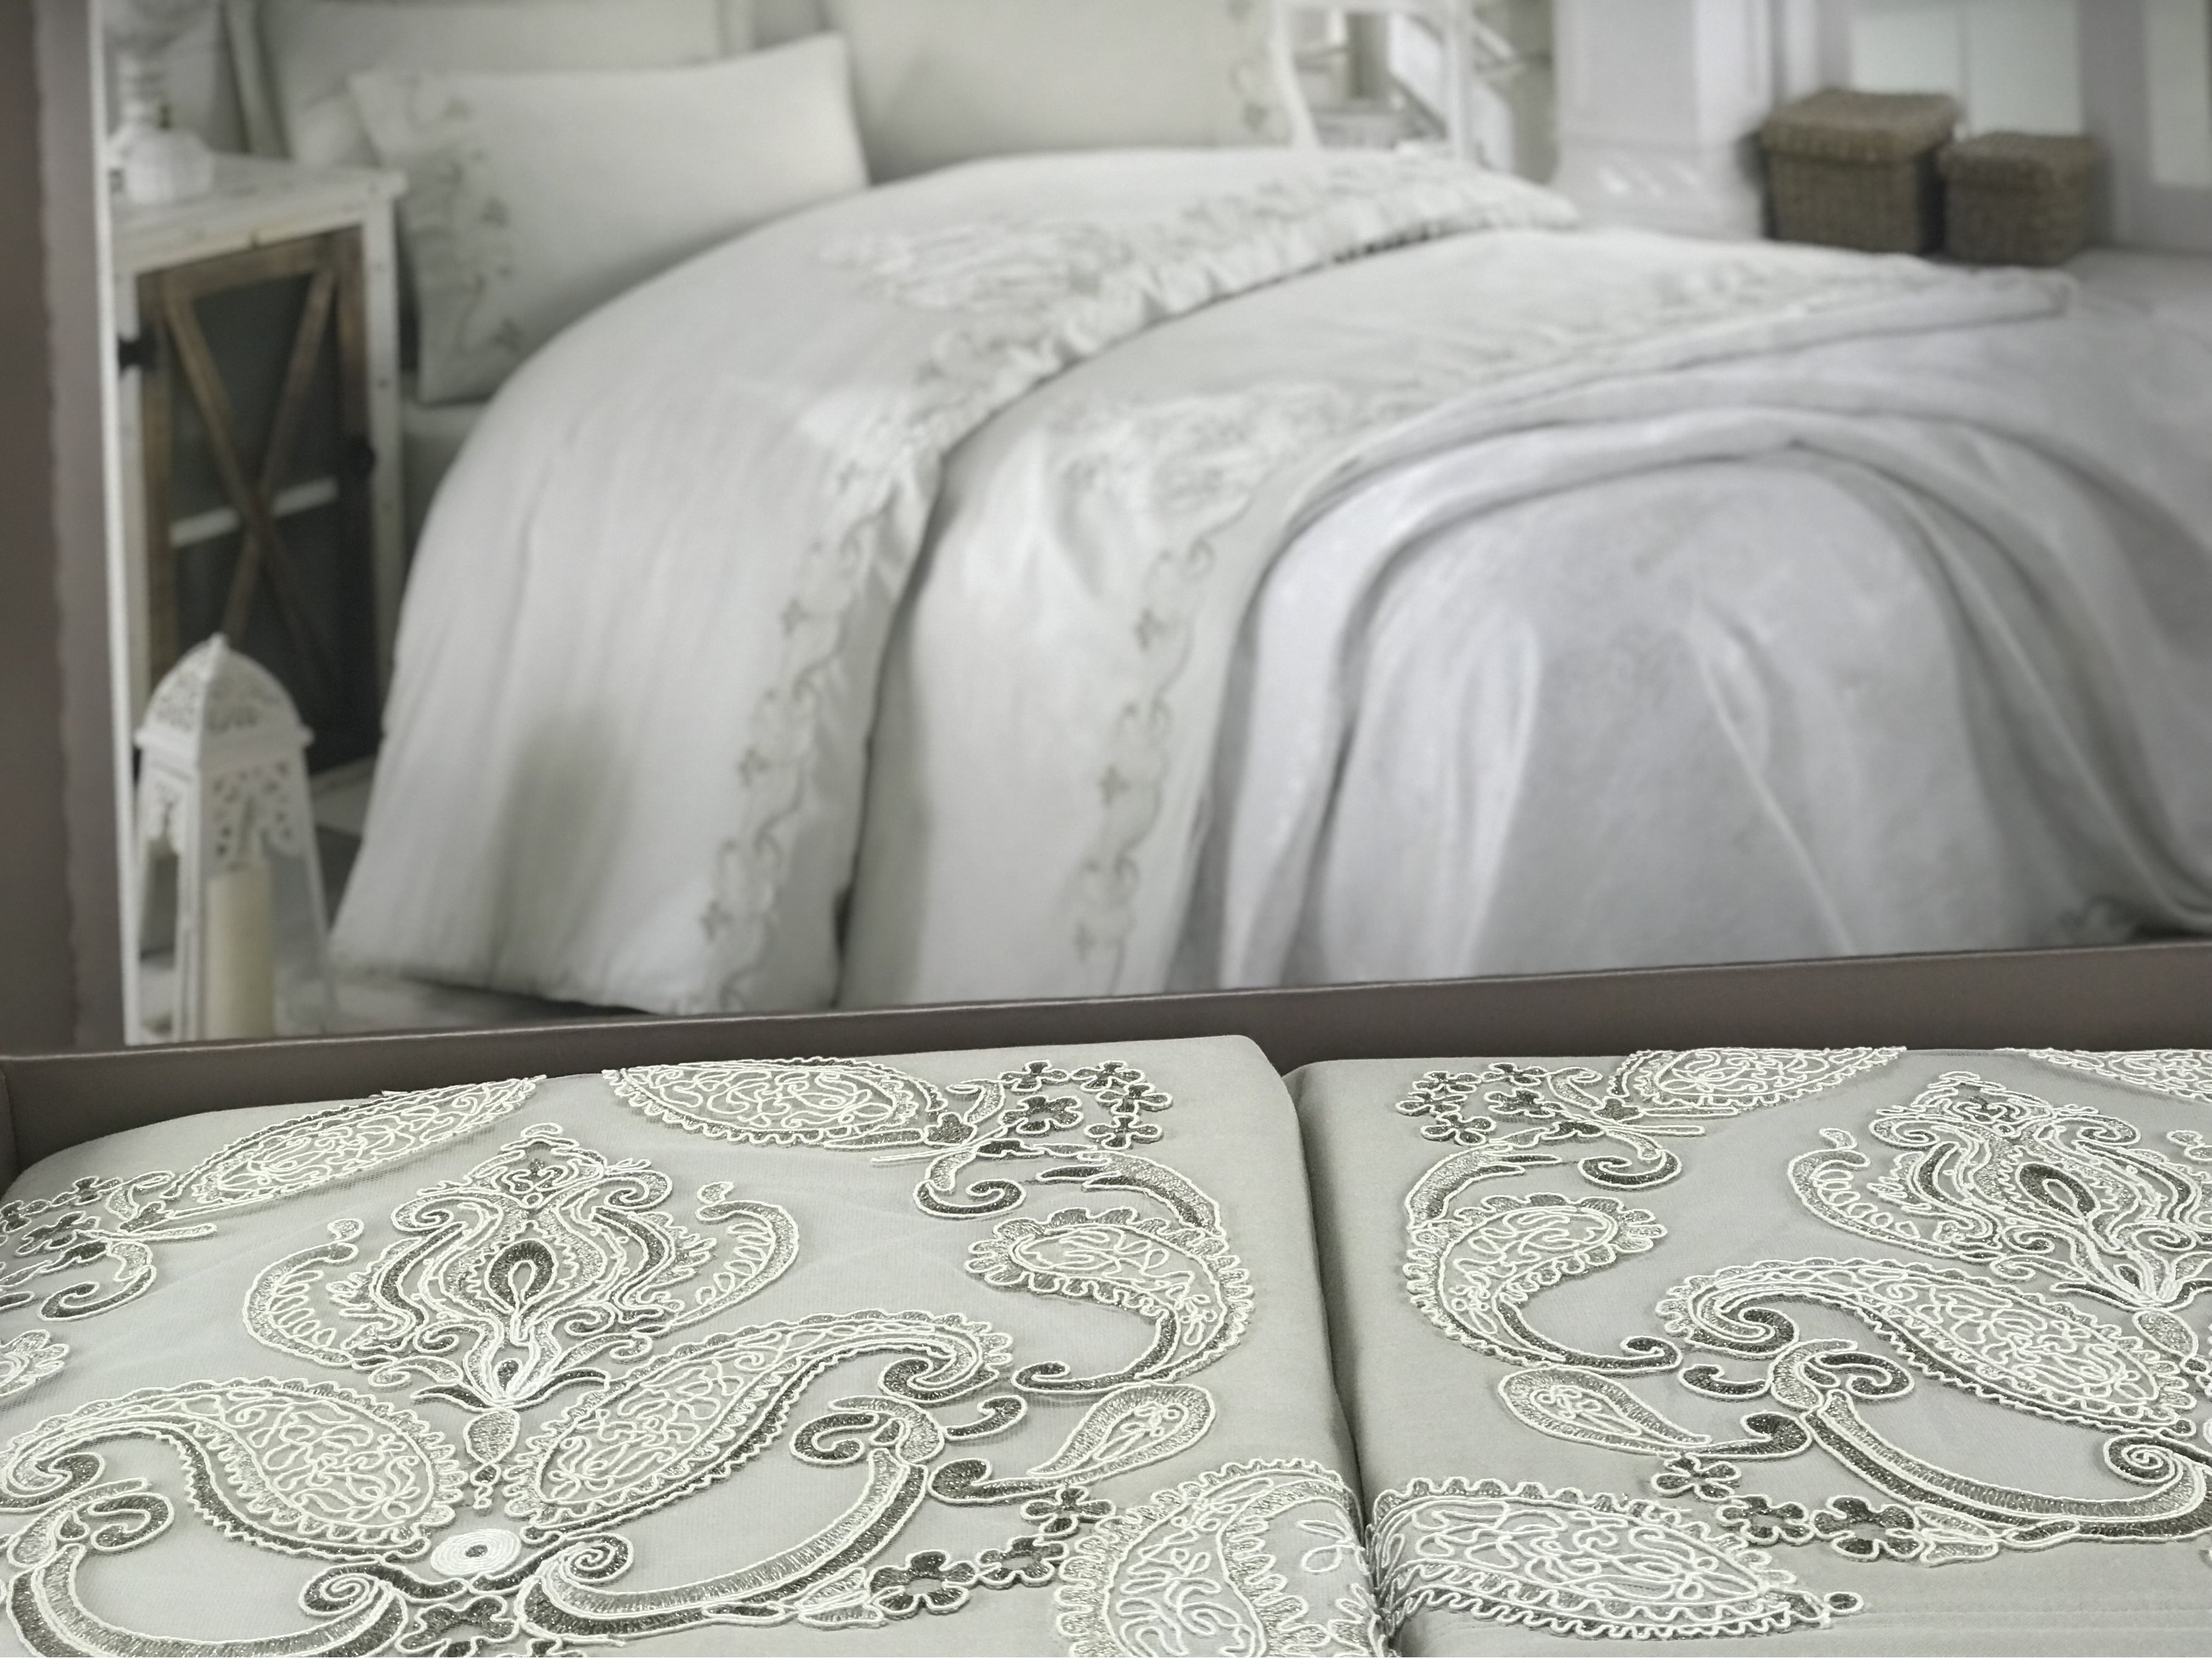 Duvet Cover Set with Pique - Made in Turkey